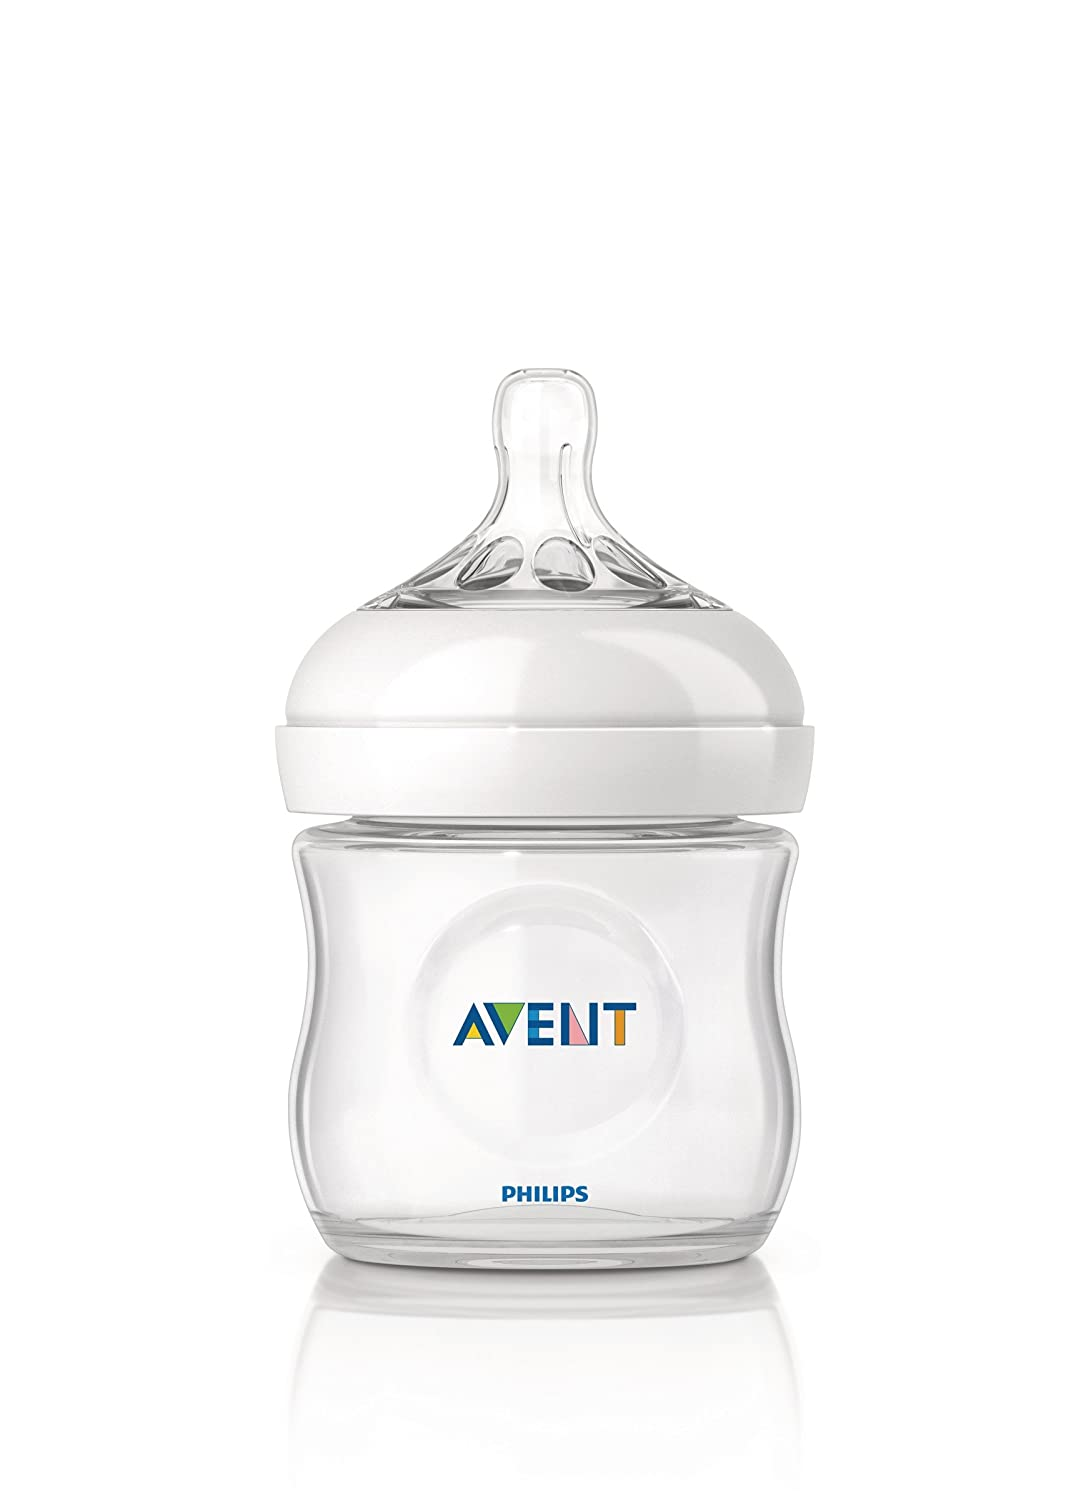 Philips AVENT SCF332-01 Comfort Single Electric Breast Pump